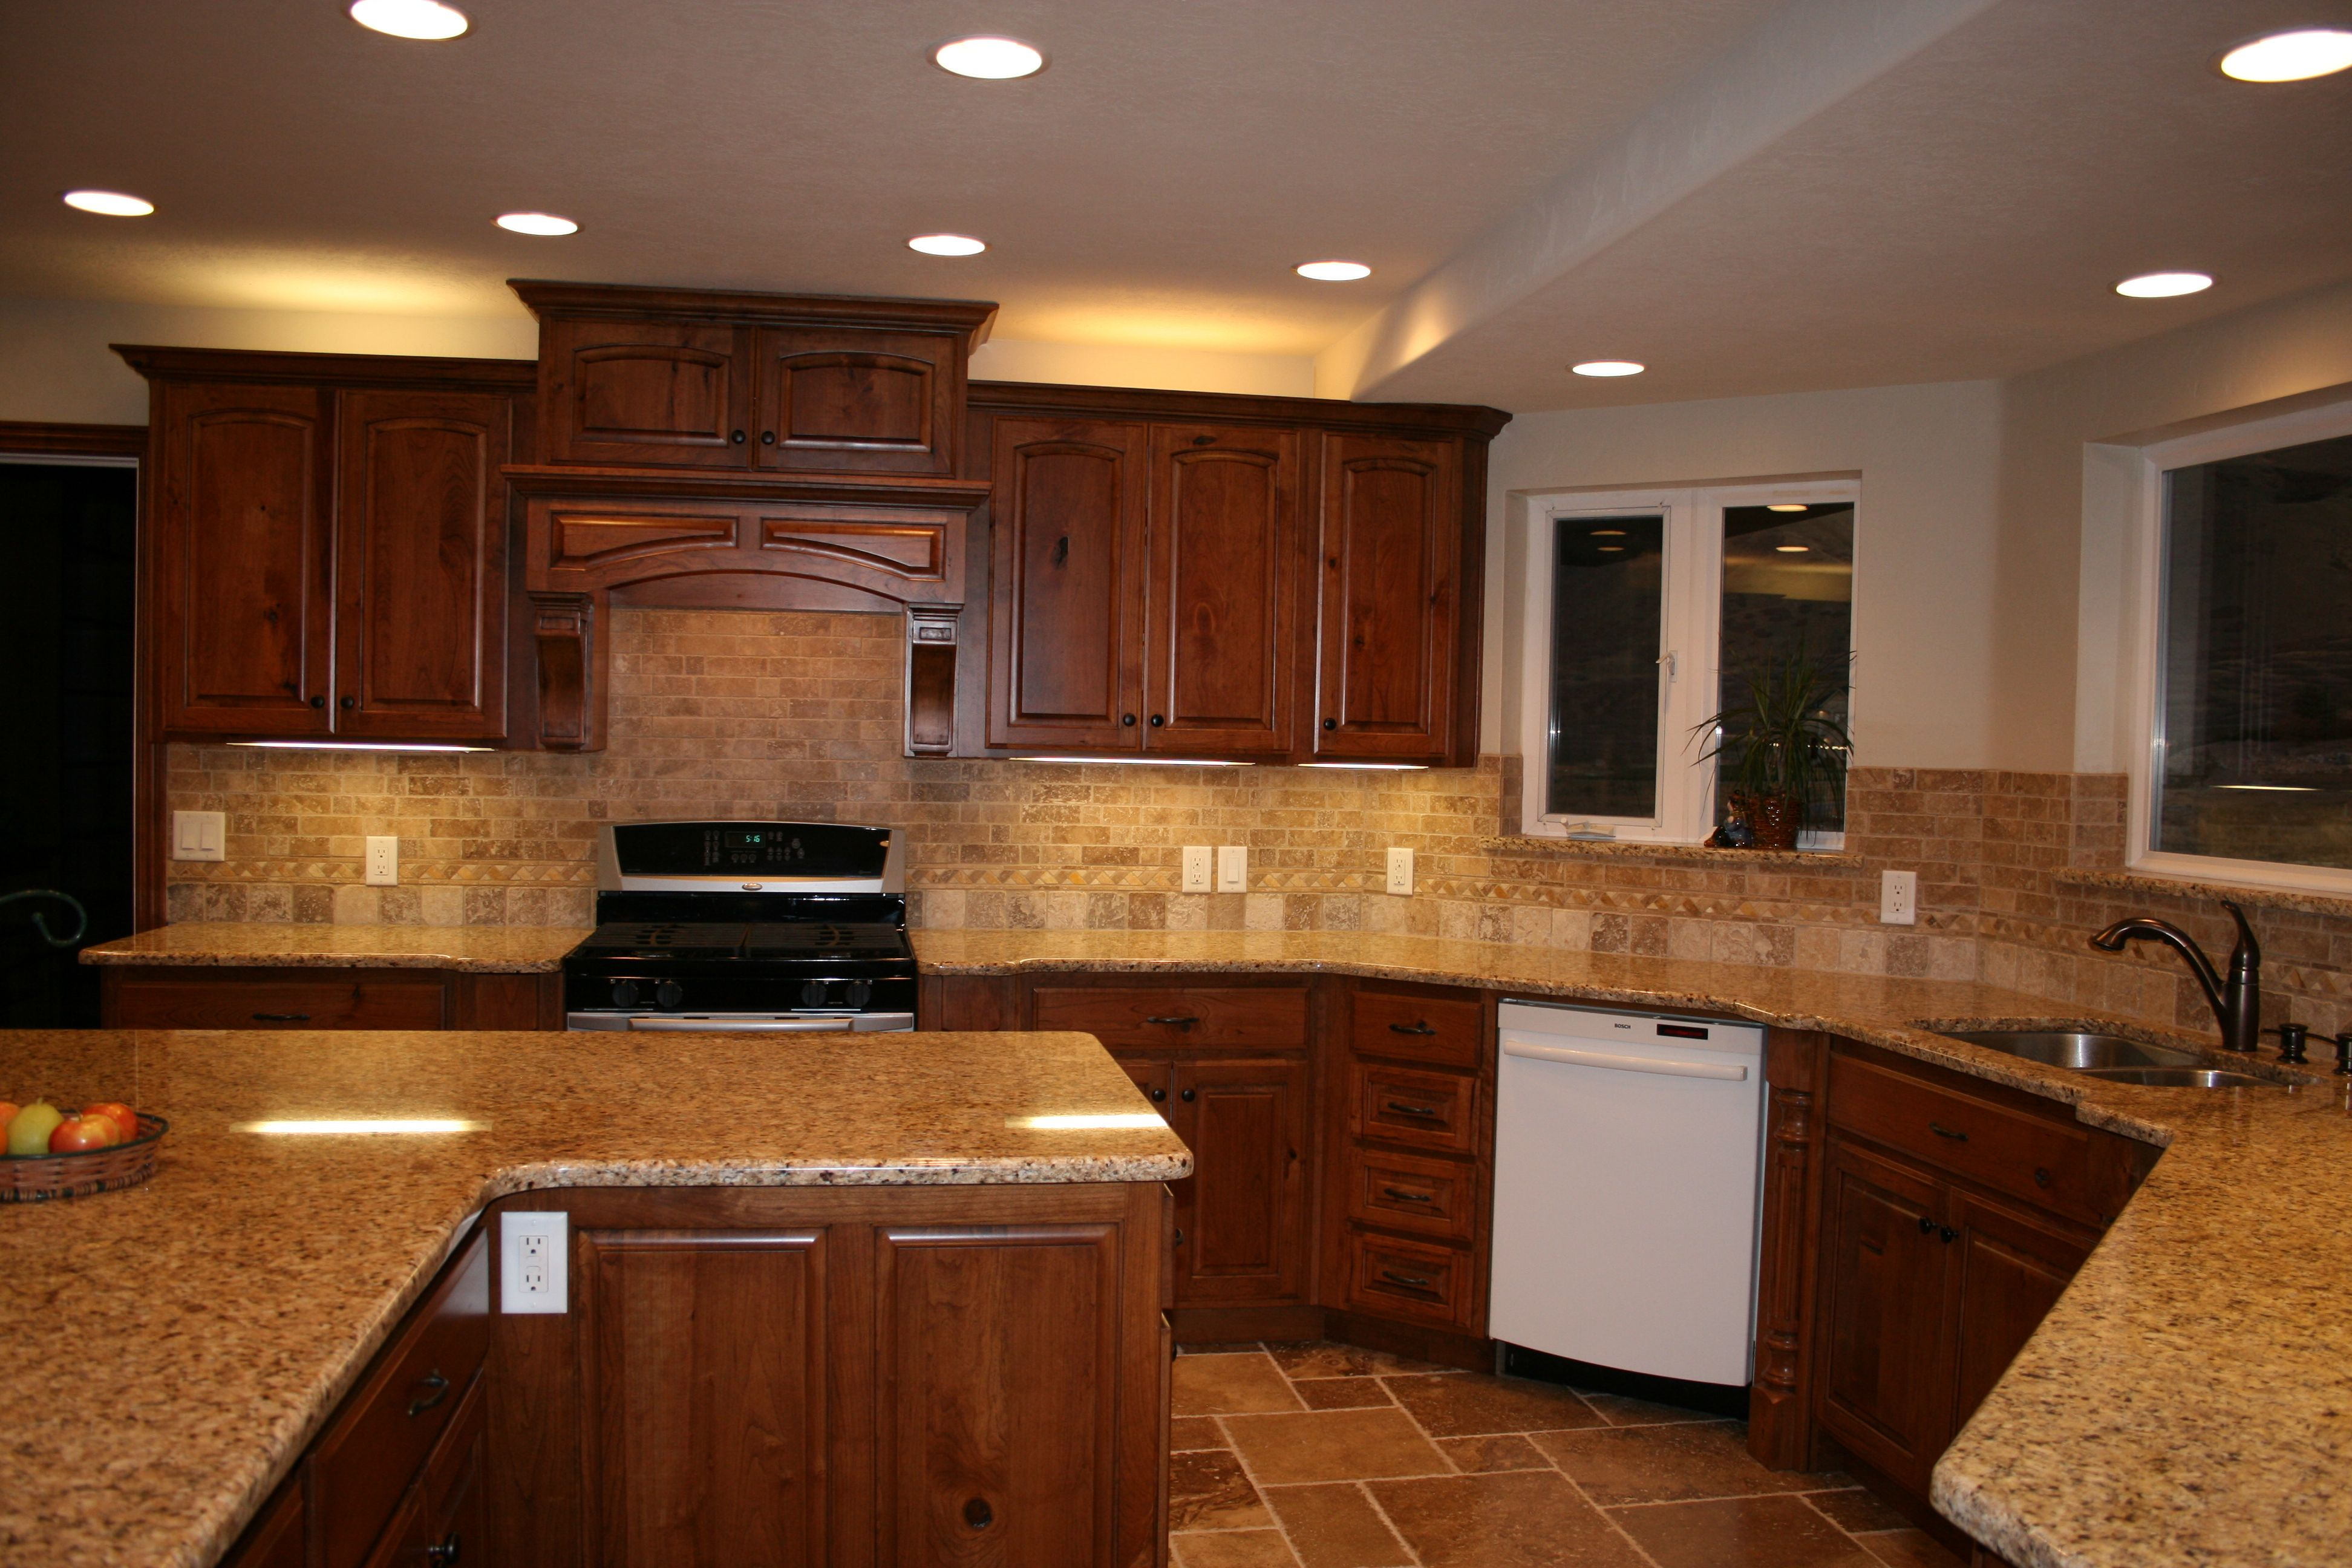 Granite Kitchen Countertops, The Increased Popularity ... on Backsplash Ideas For Black Granite Countertops And Cherry Cabinets  id=11523